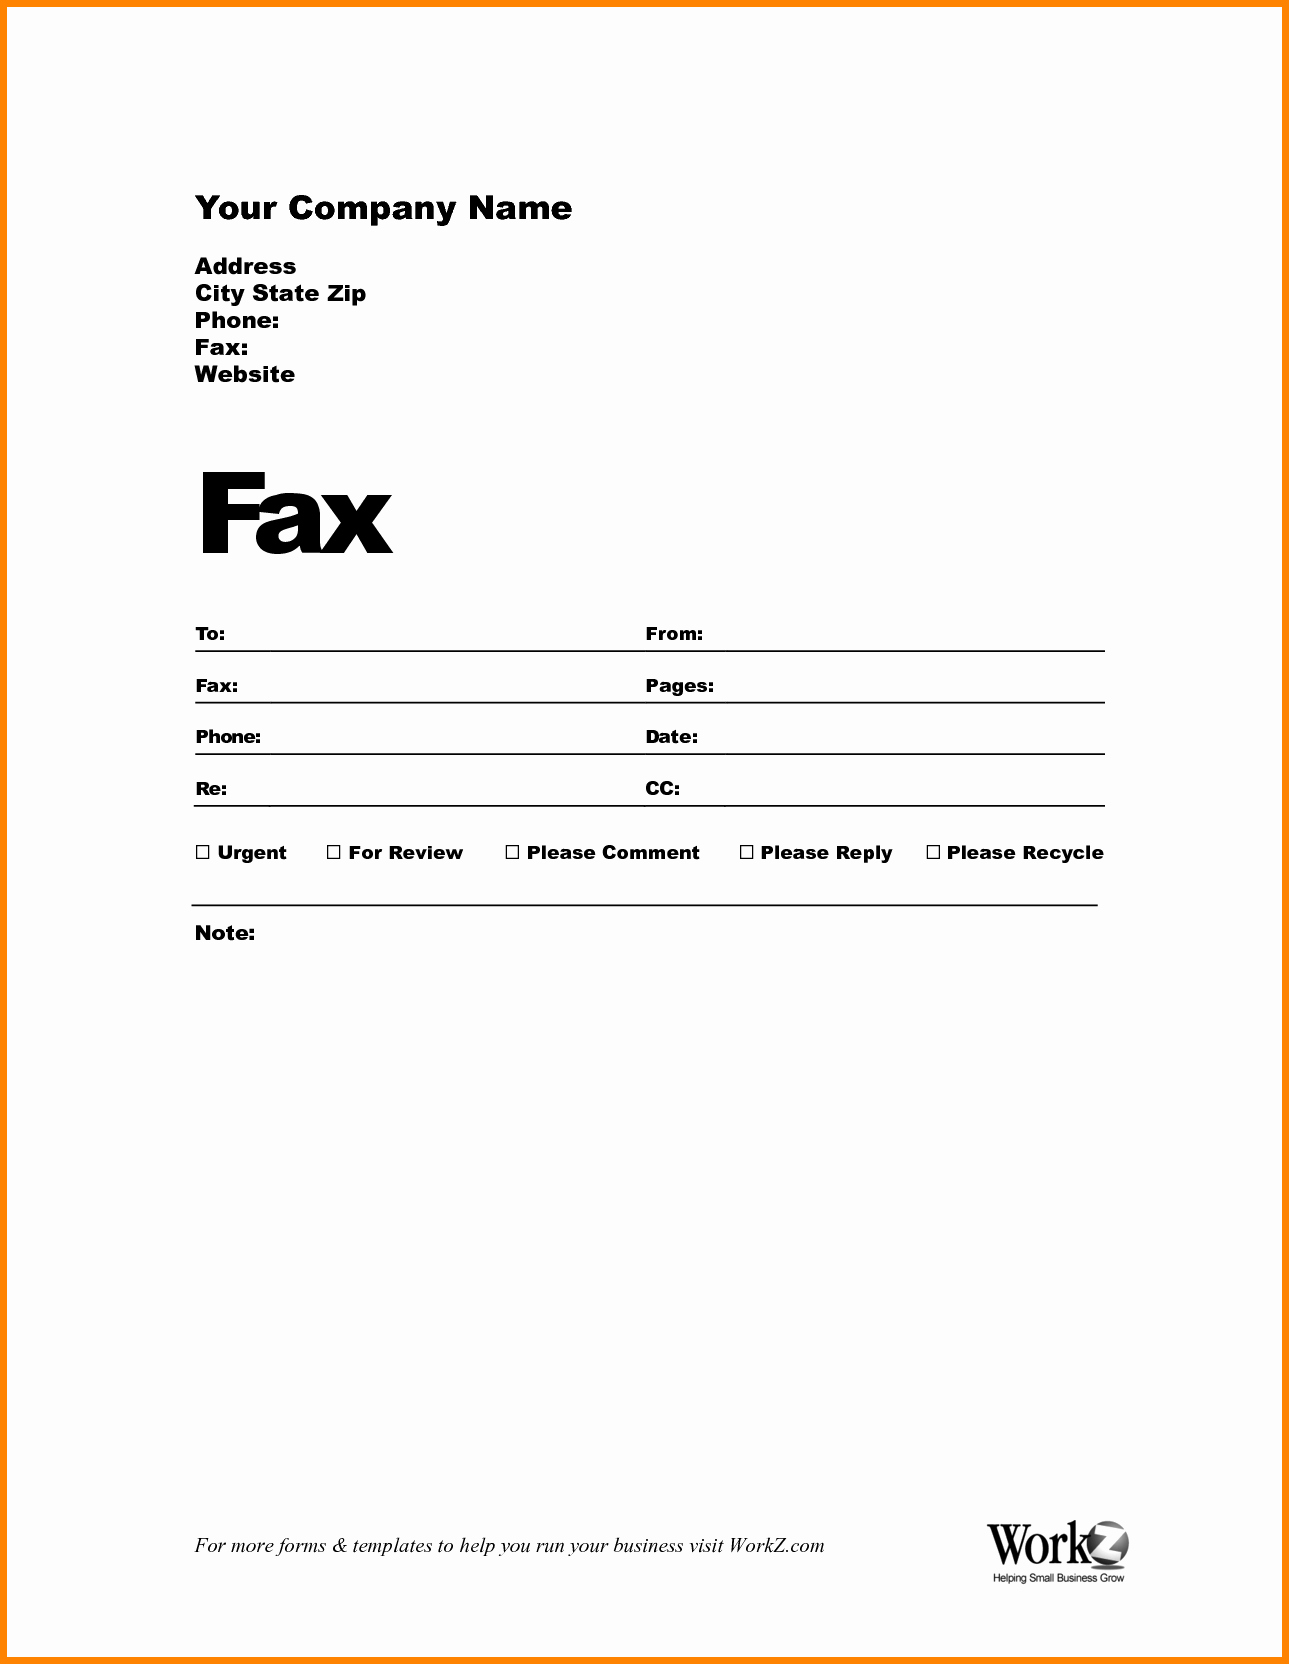 Fax Cover Sheet Word Document Unique Fax Cover Sheet for Word Portablegasgrillweber